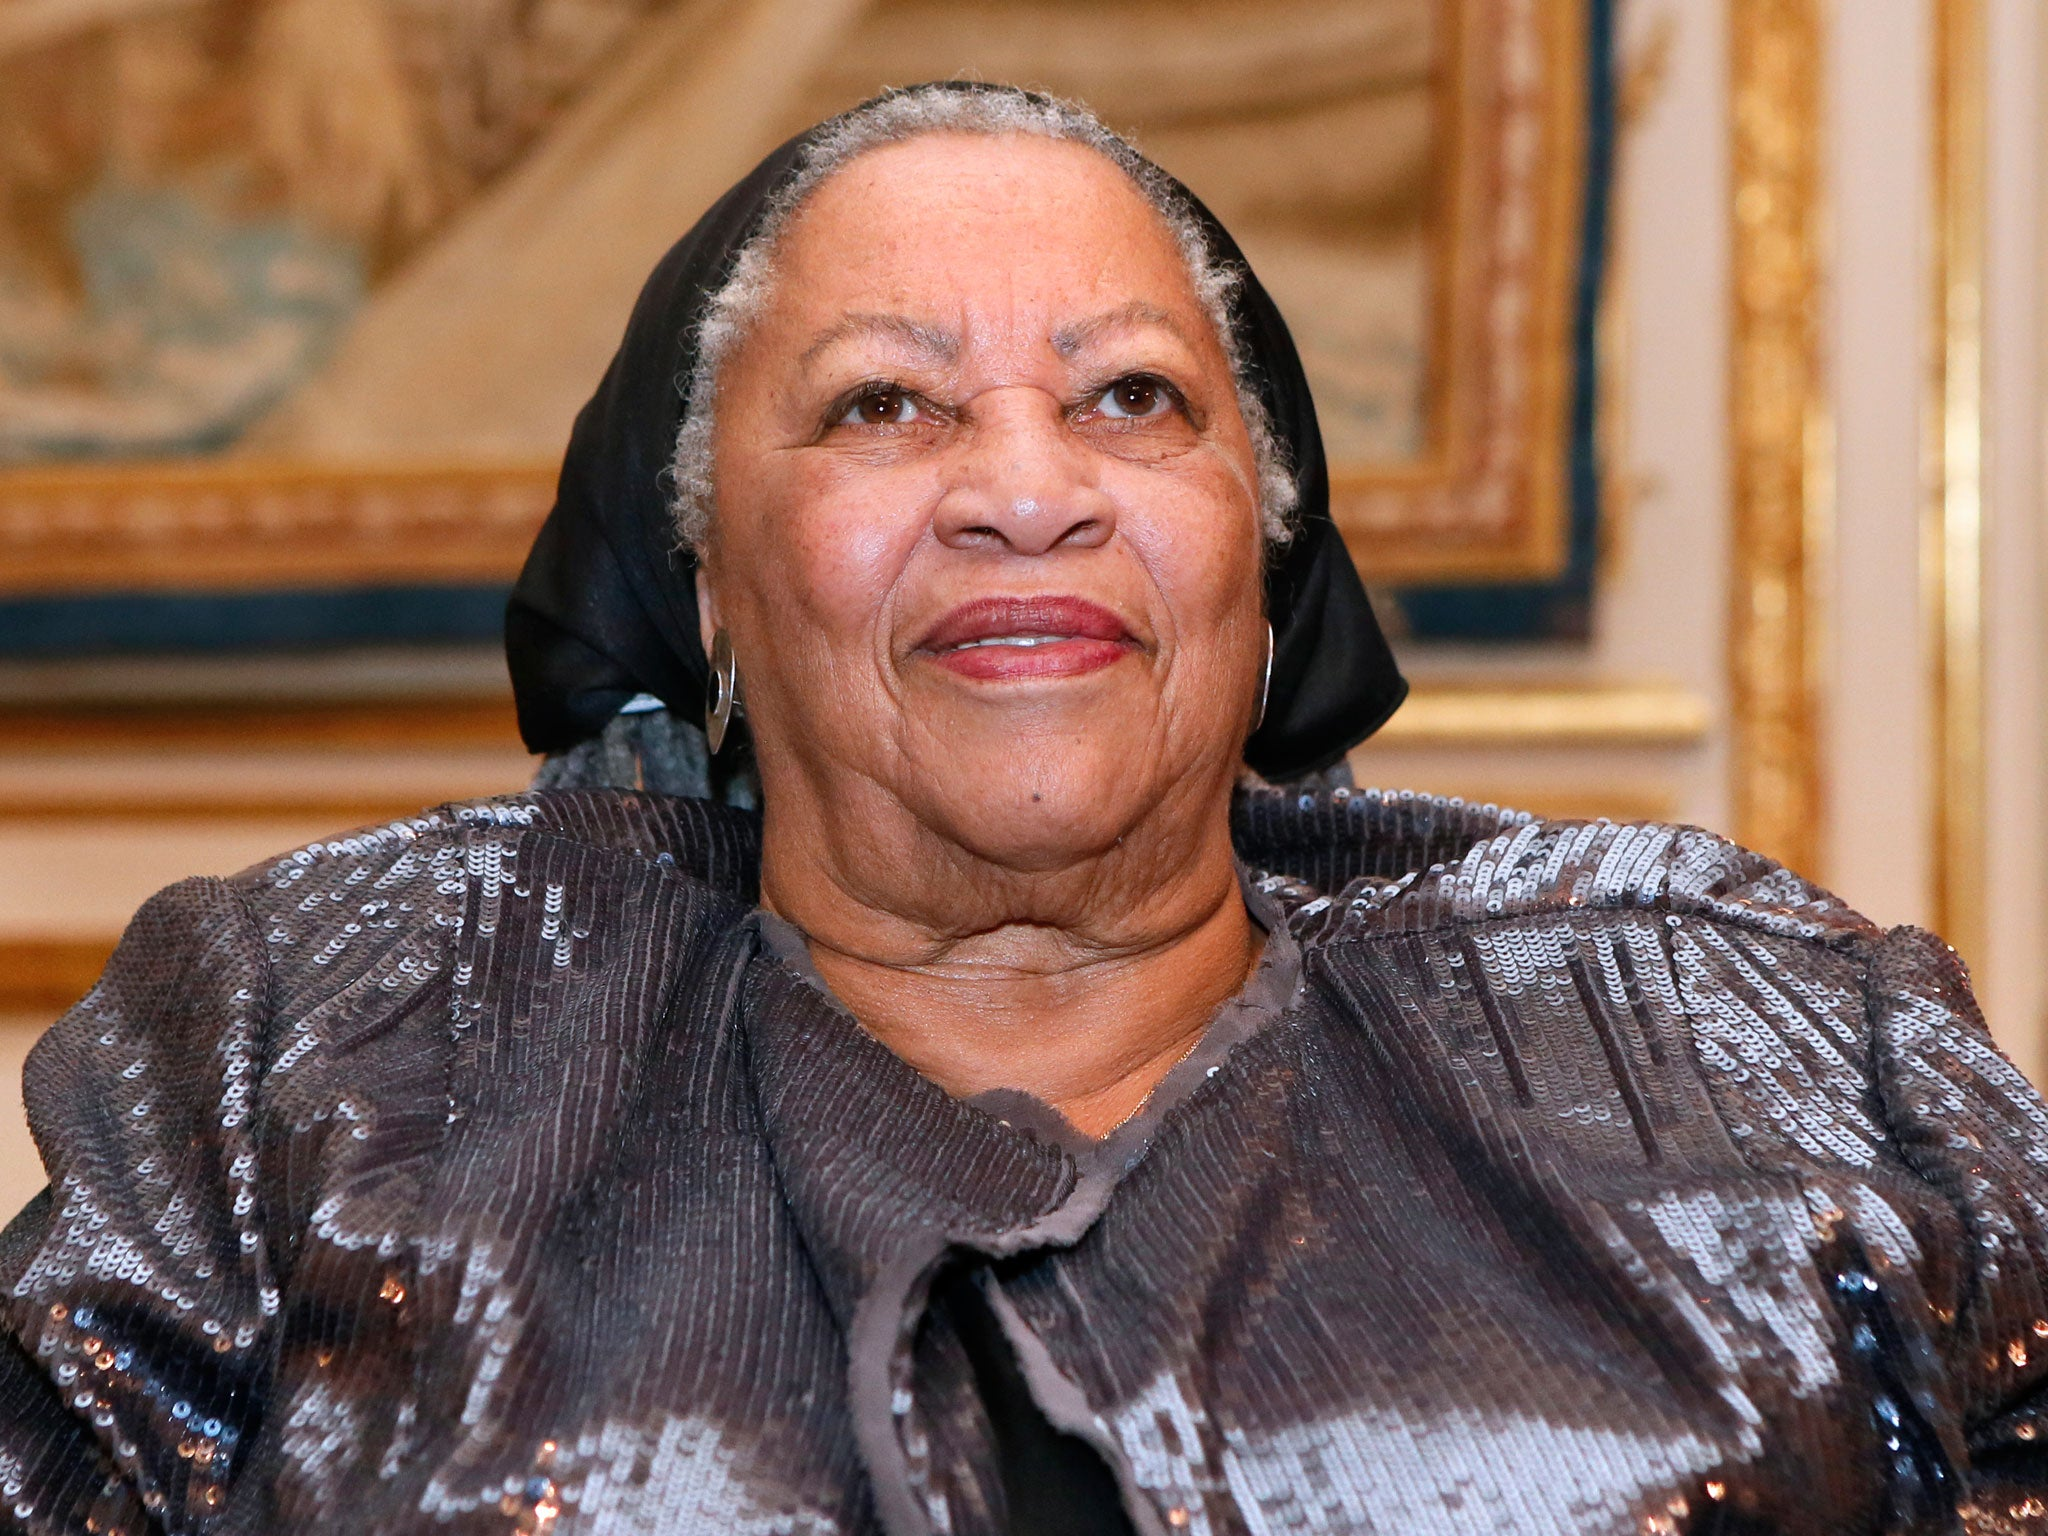 Toni Morrison – Mouth Full of Blood review: Unashamedly ambitious